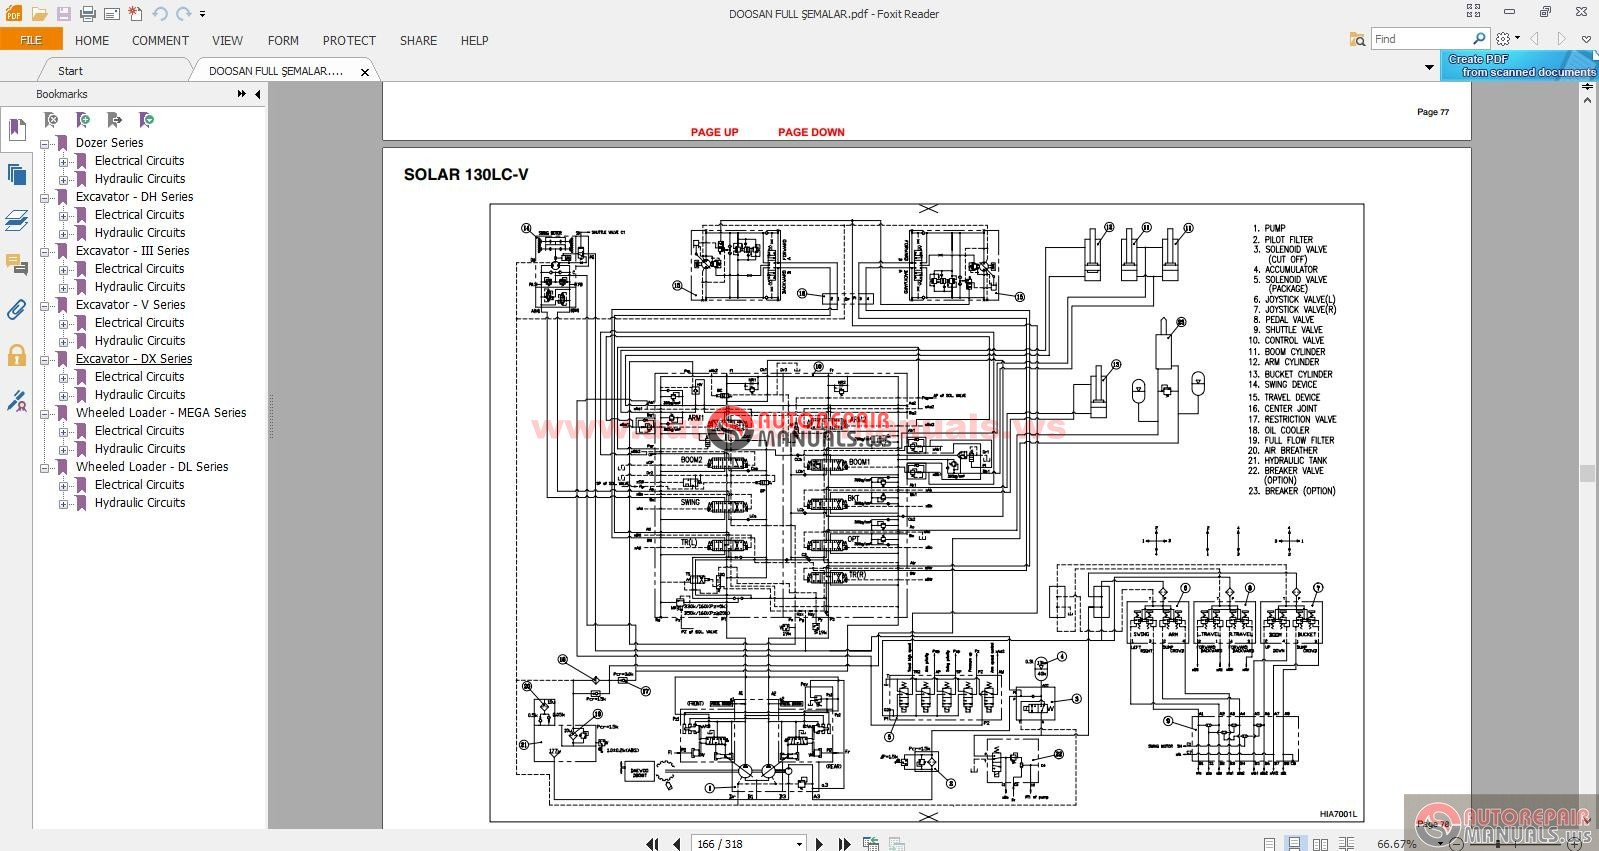 daewoo forklift wiring diagram also with BMW Wiring Diagrams as well as  doosan full manual 423gb